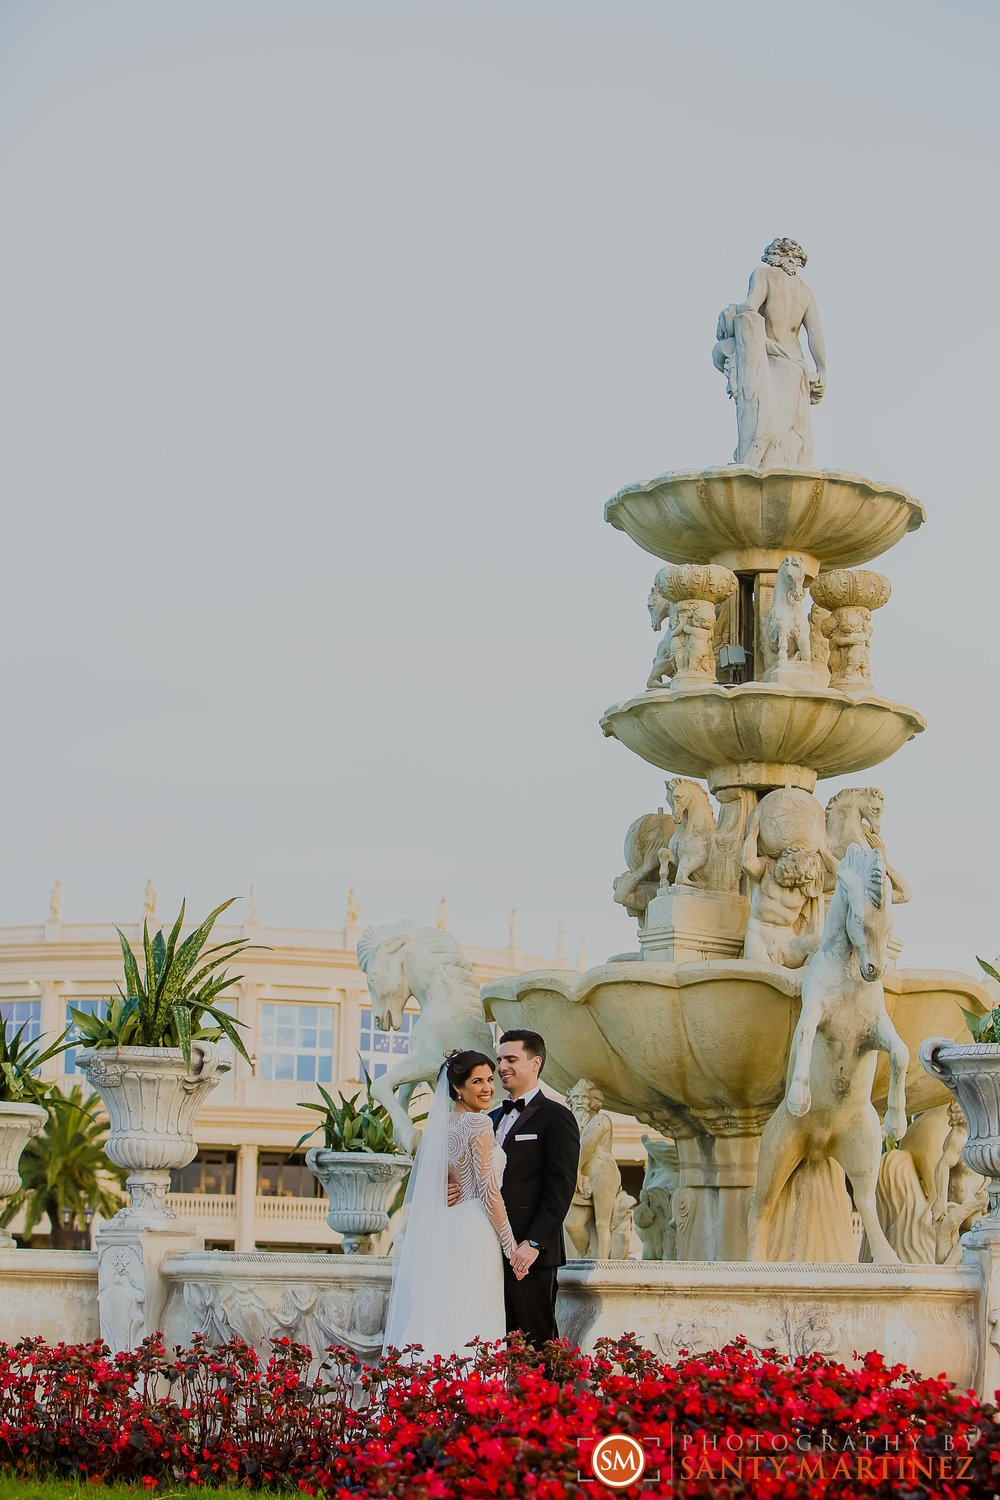 Wedding Trump National Doral Miami - Santy Martinez Photography-13.jpg